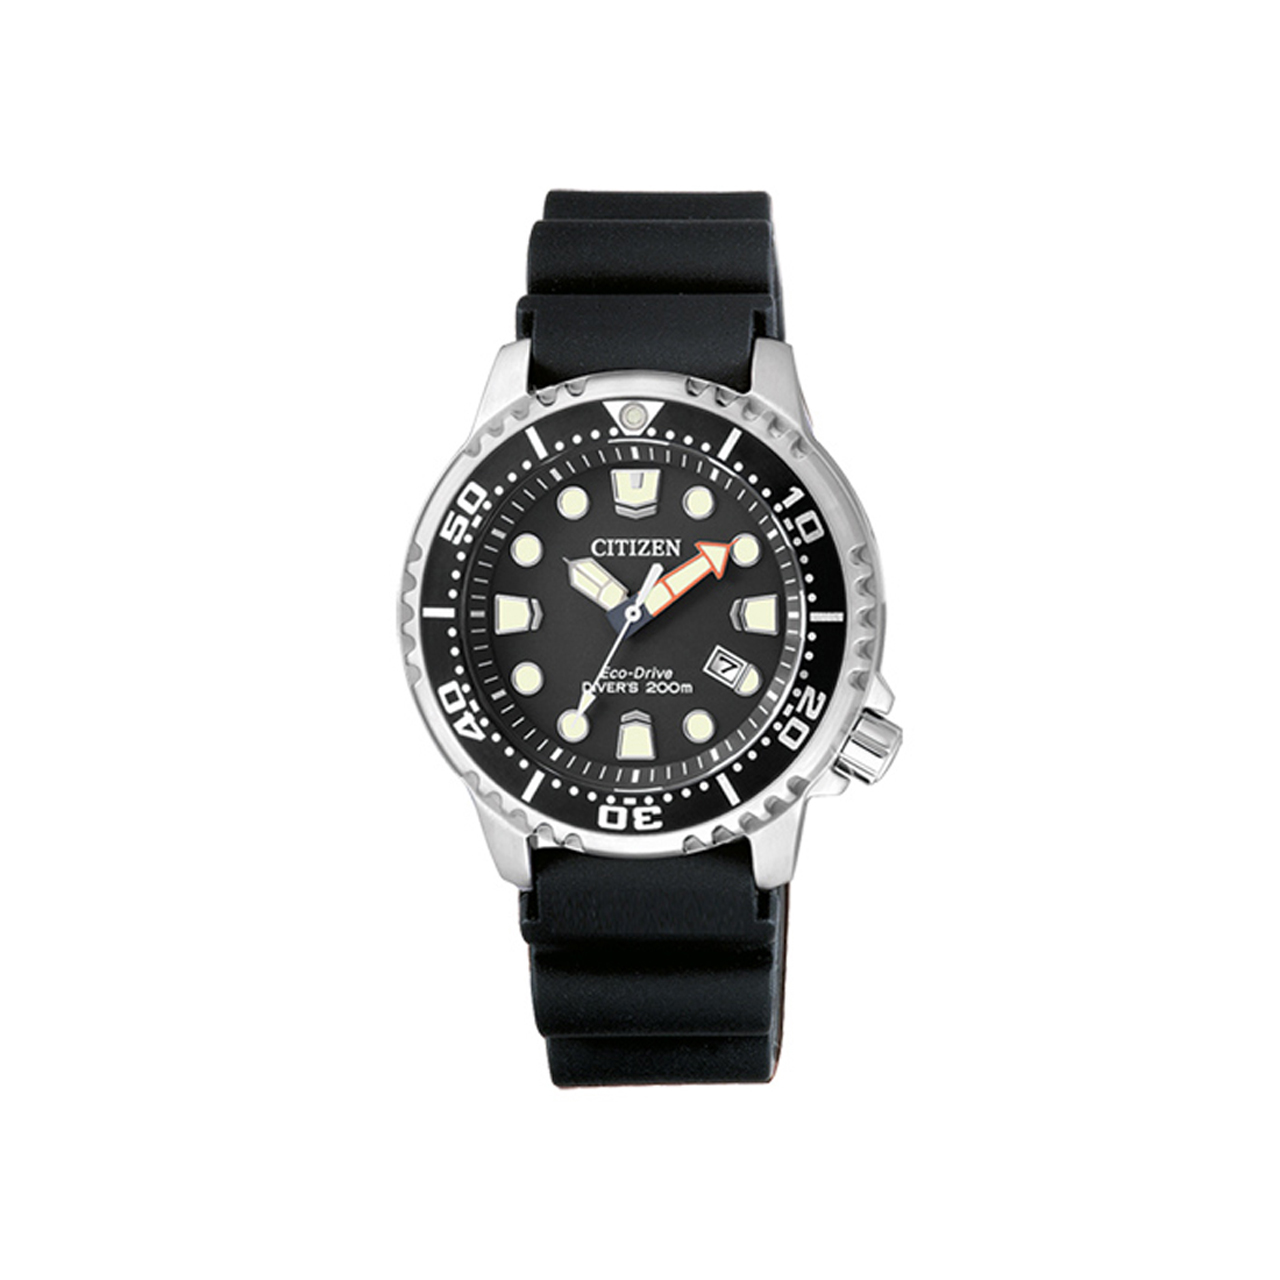 Citizen Promaster Marine Diver watch EP6050-17E